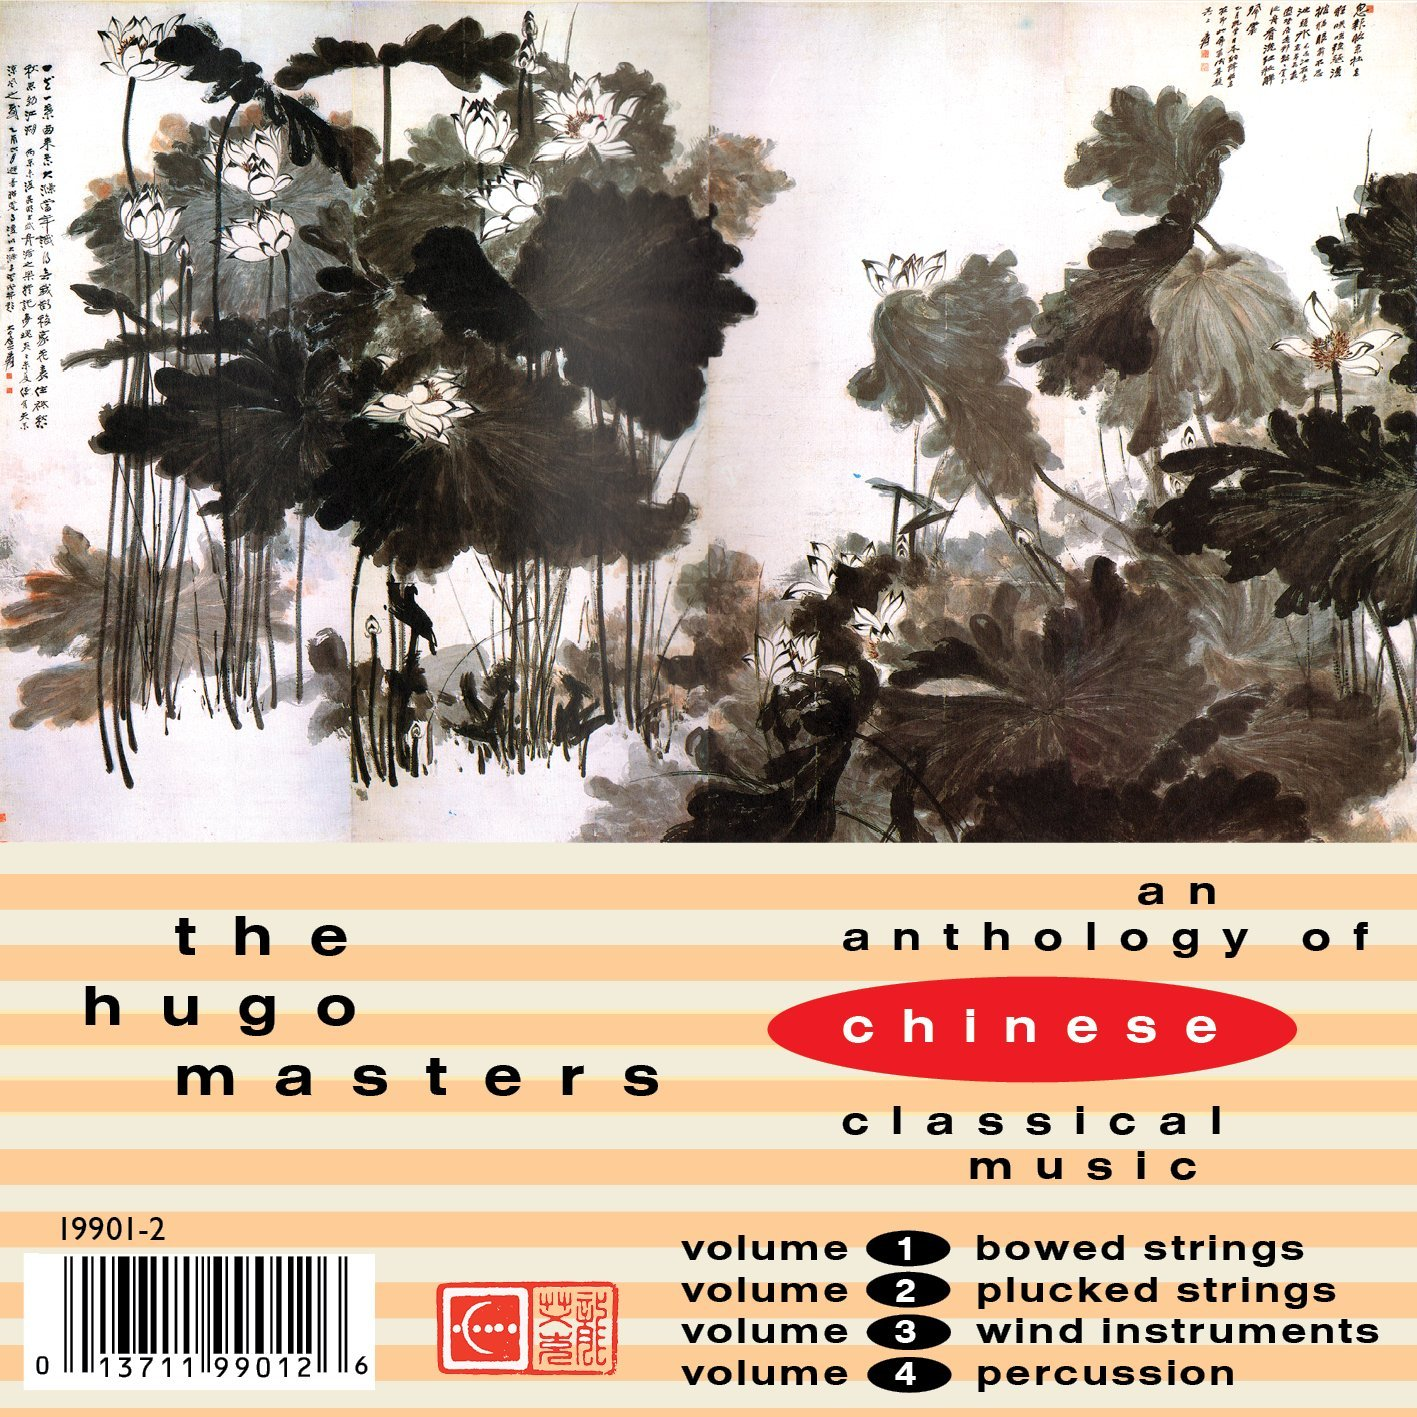 Chinese Anthology of Classical Music 1-4 by Celestial Harmonies